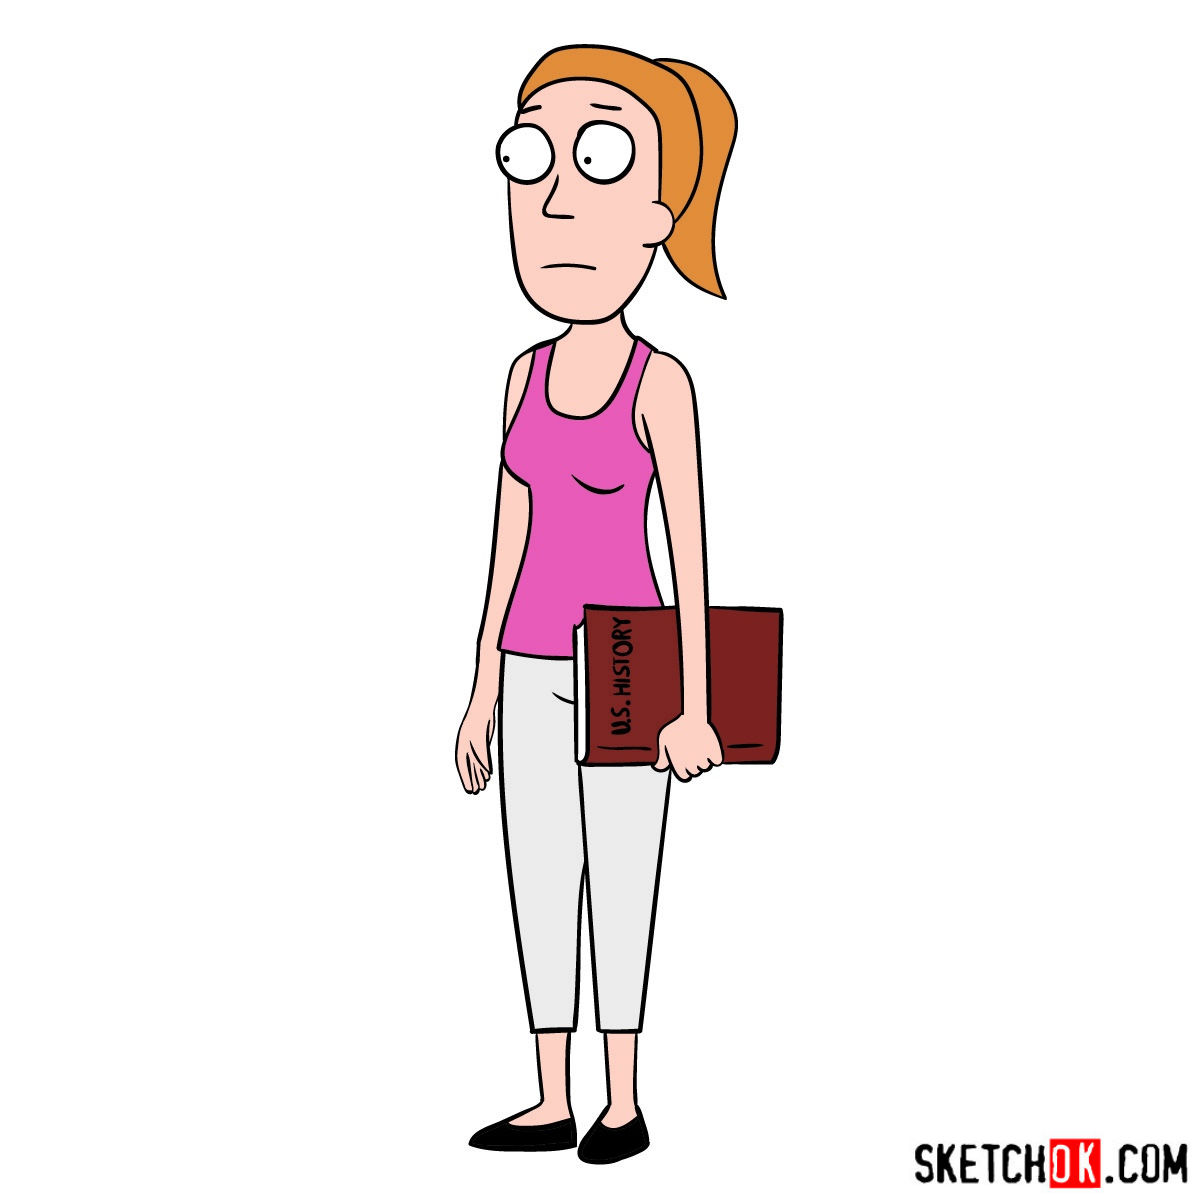 How to draw Summer Smith from Rick and Morty series